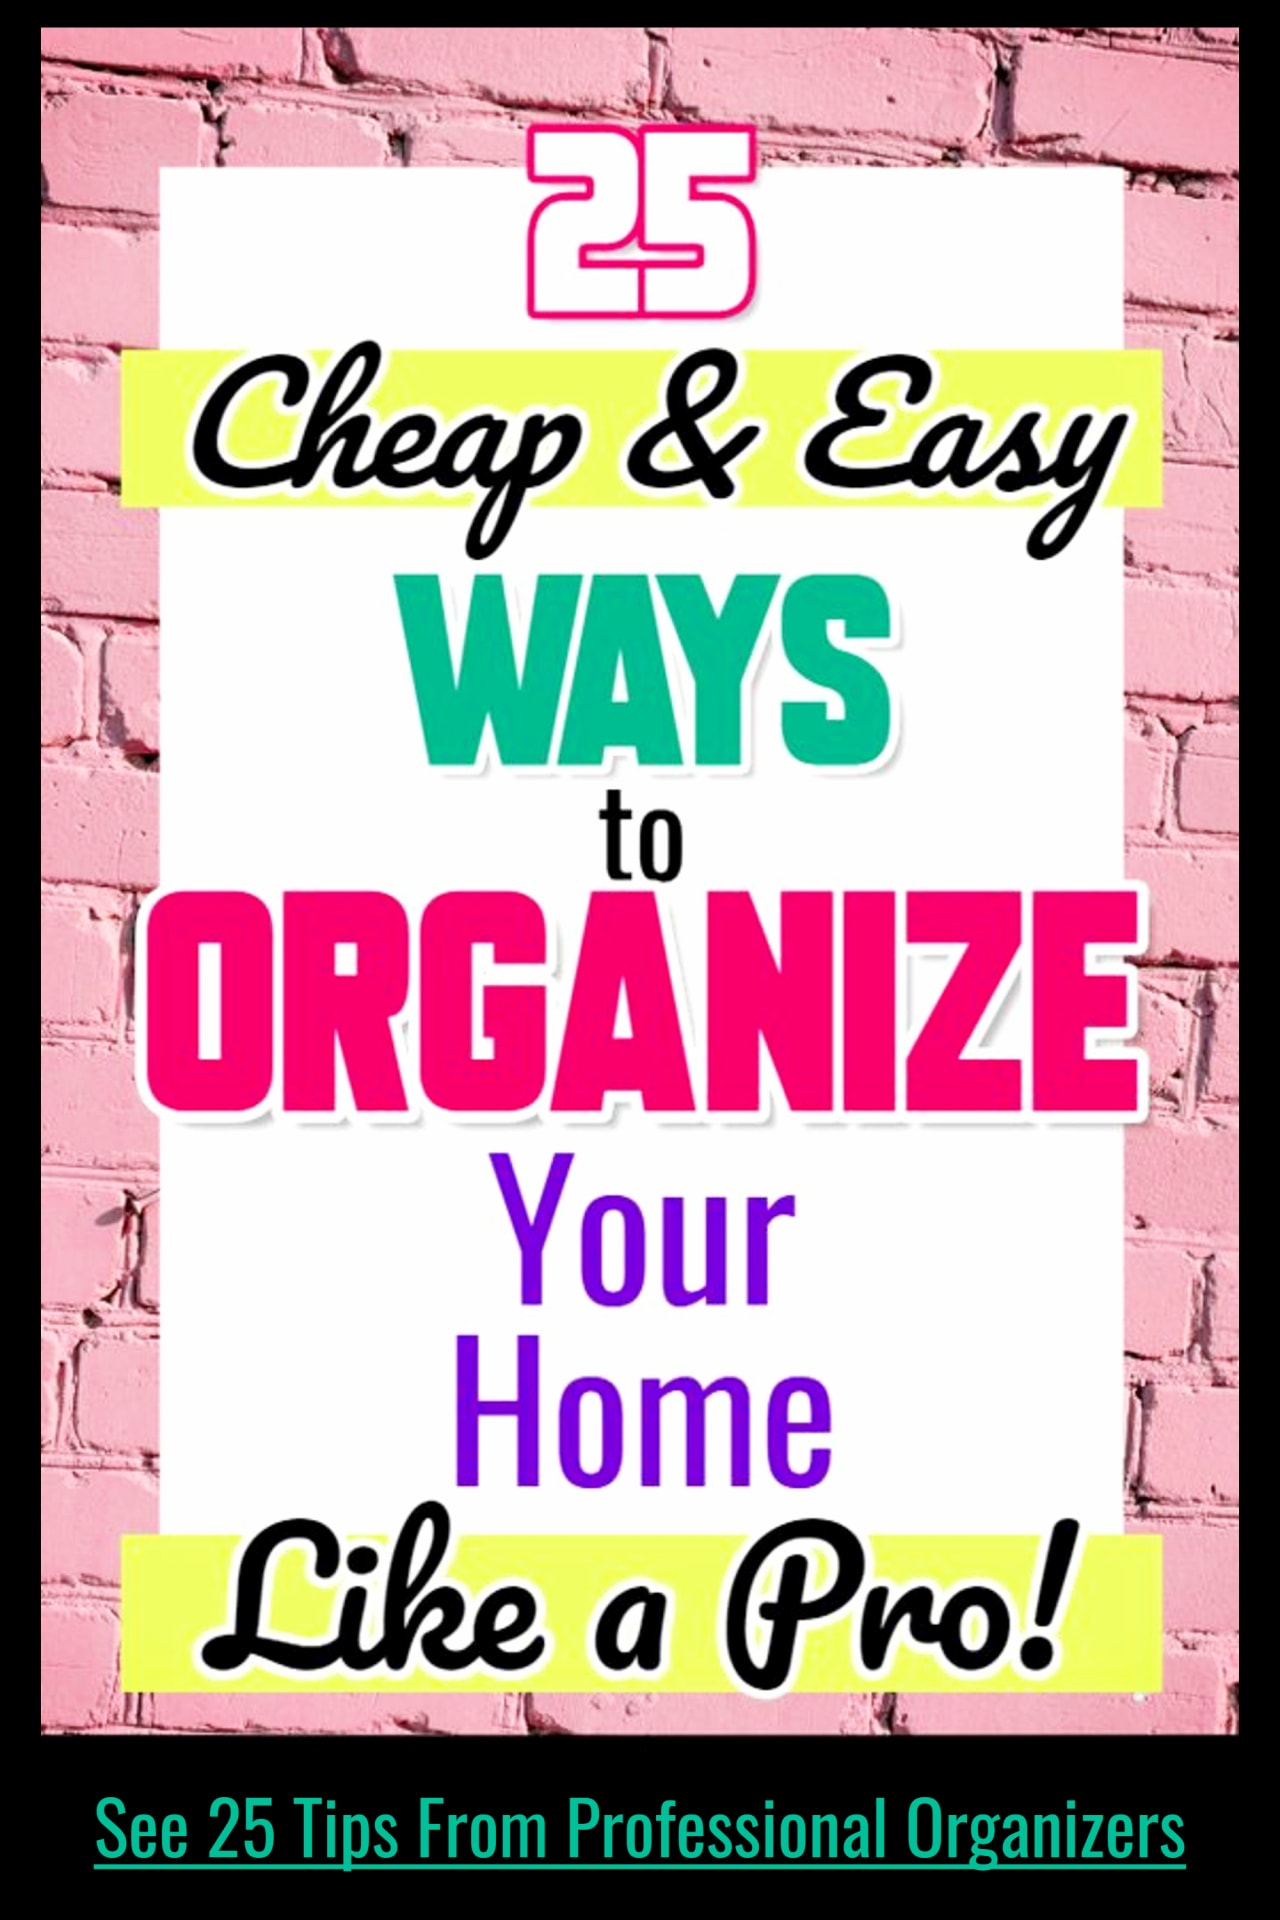 Organizing your home on a budget - declutter challenge! declutter and organize your entire home in one hour a day like professional organizers without feeling overwhlmed! Cheap decluttering ideas and organizing tips and tricks.  Home organization hacks that work!